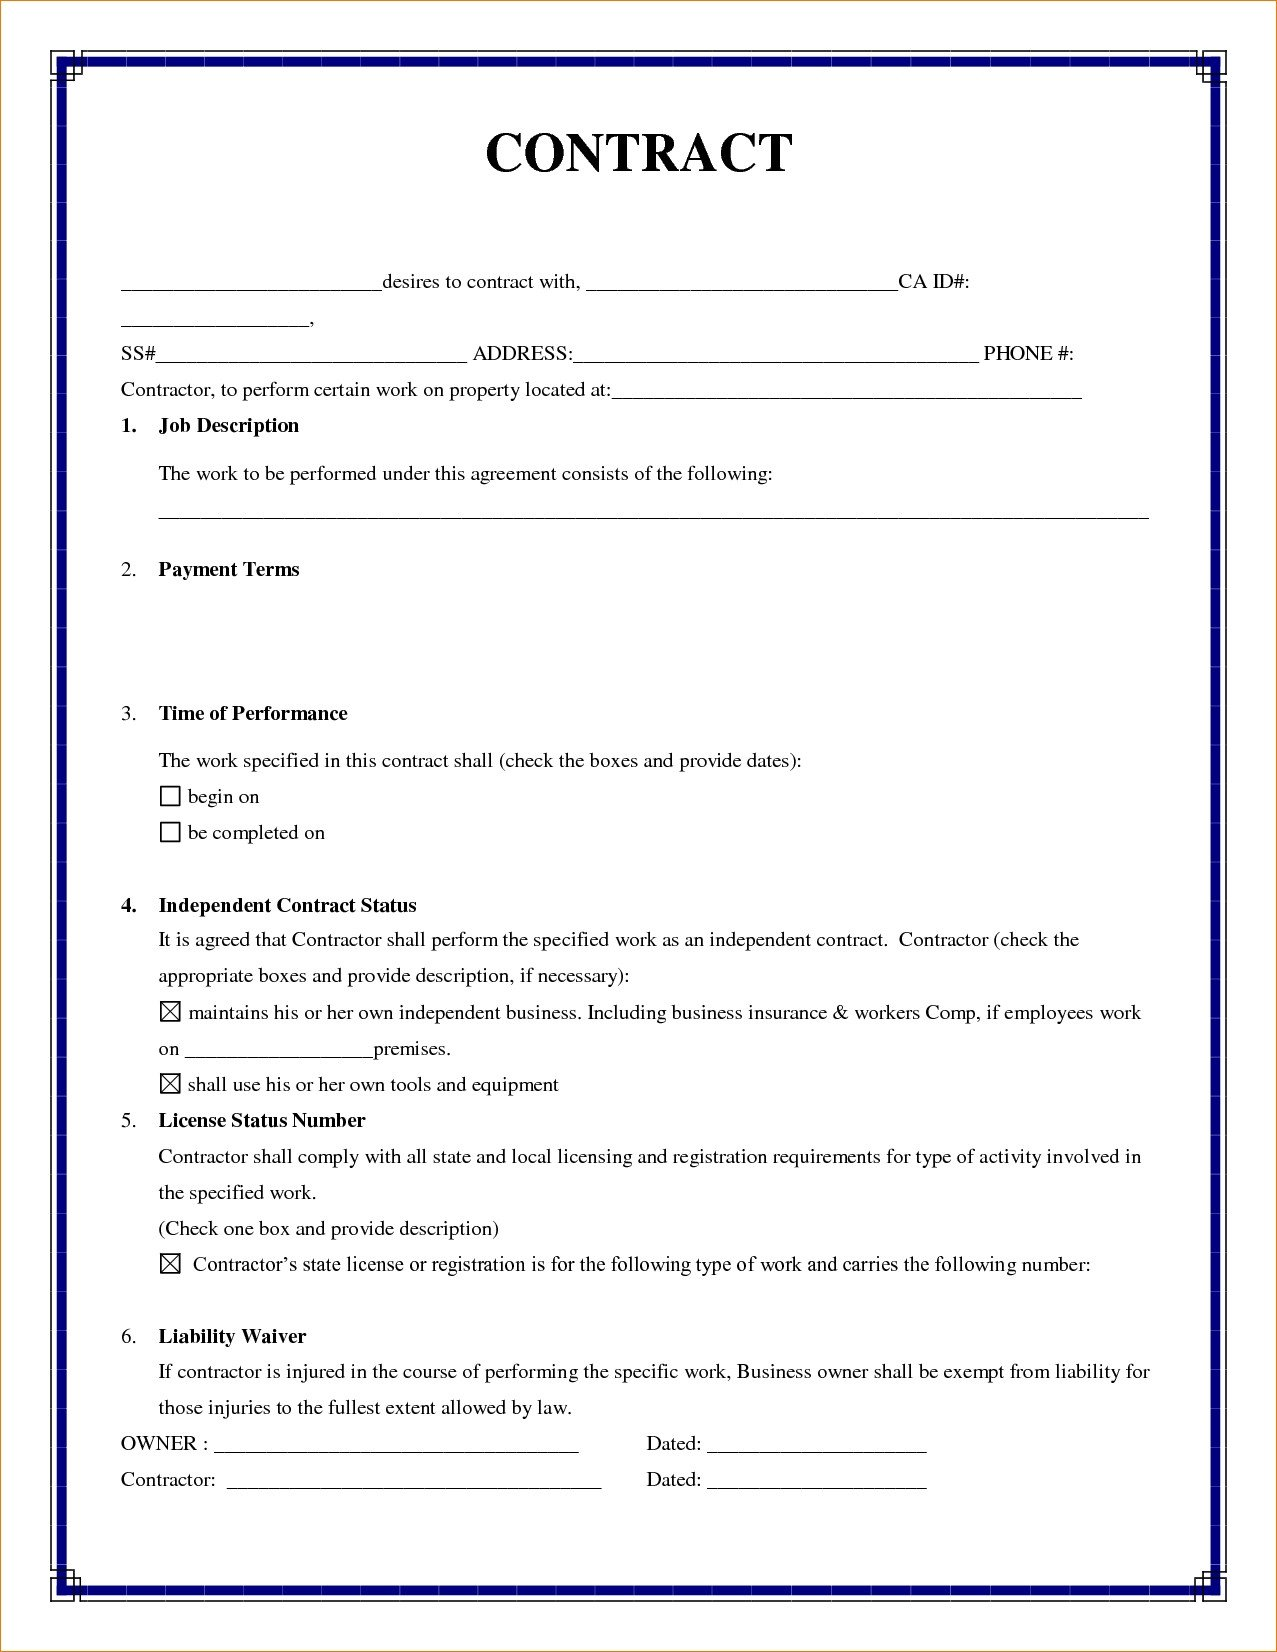 Simple Roofing Contract Template Simple Contract Agreement